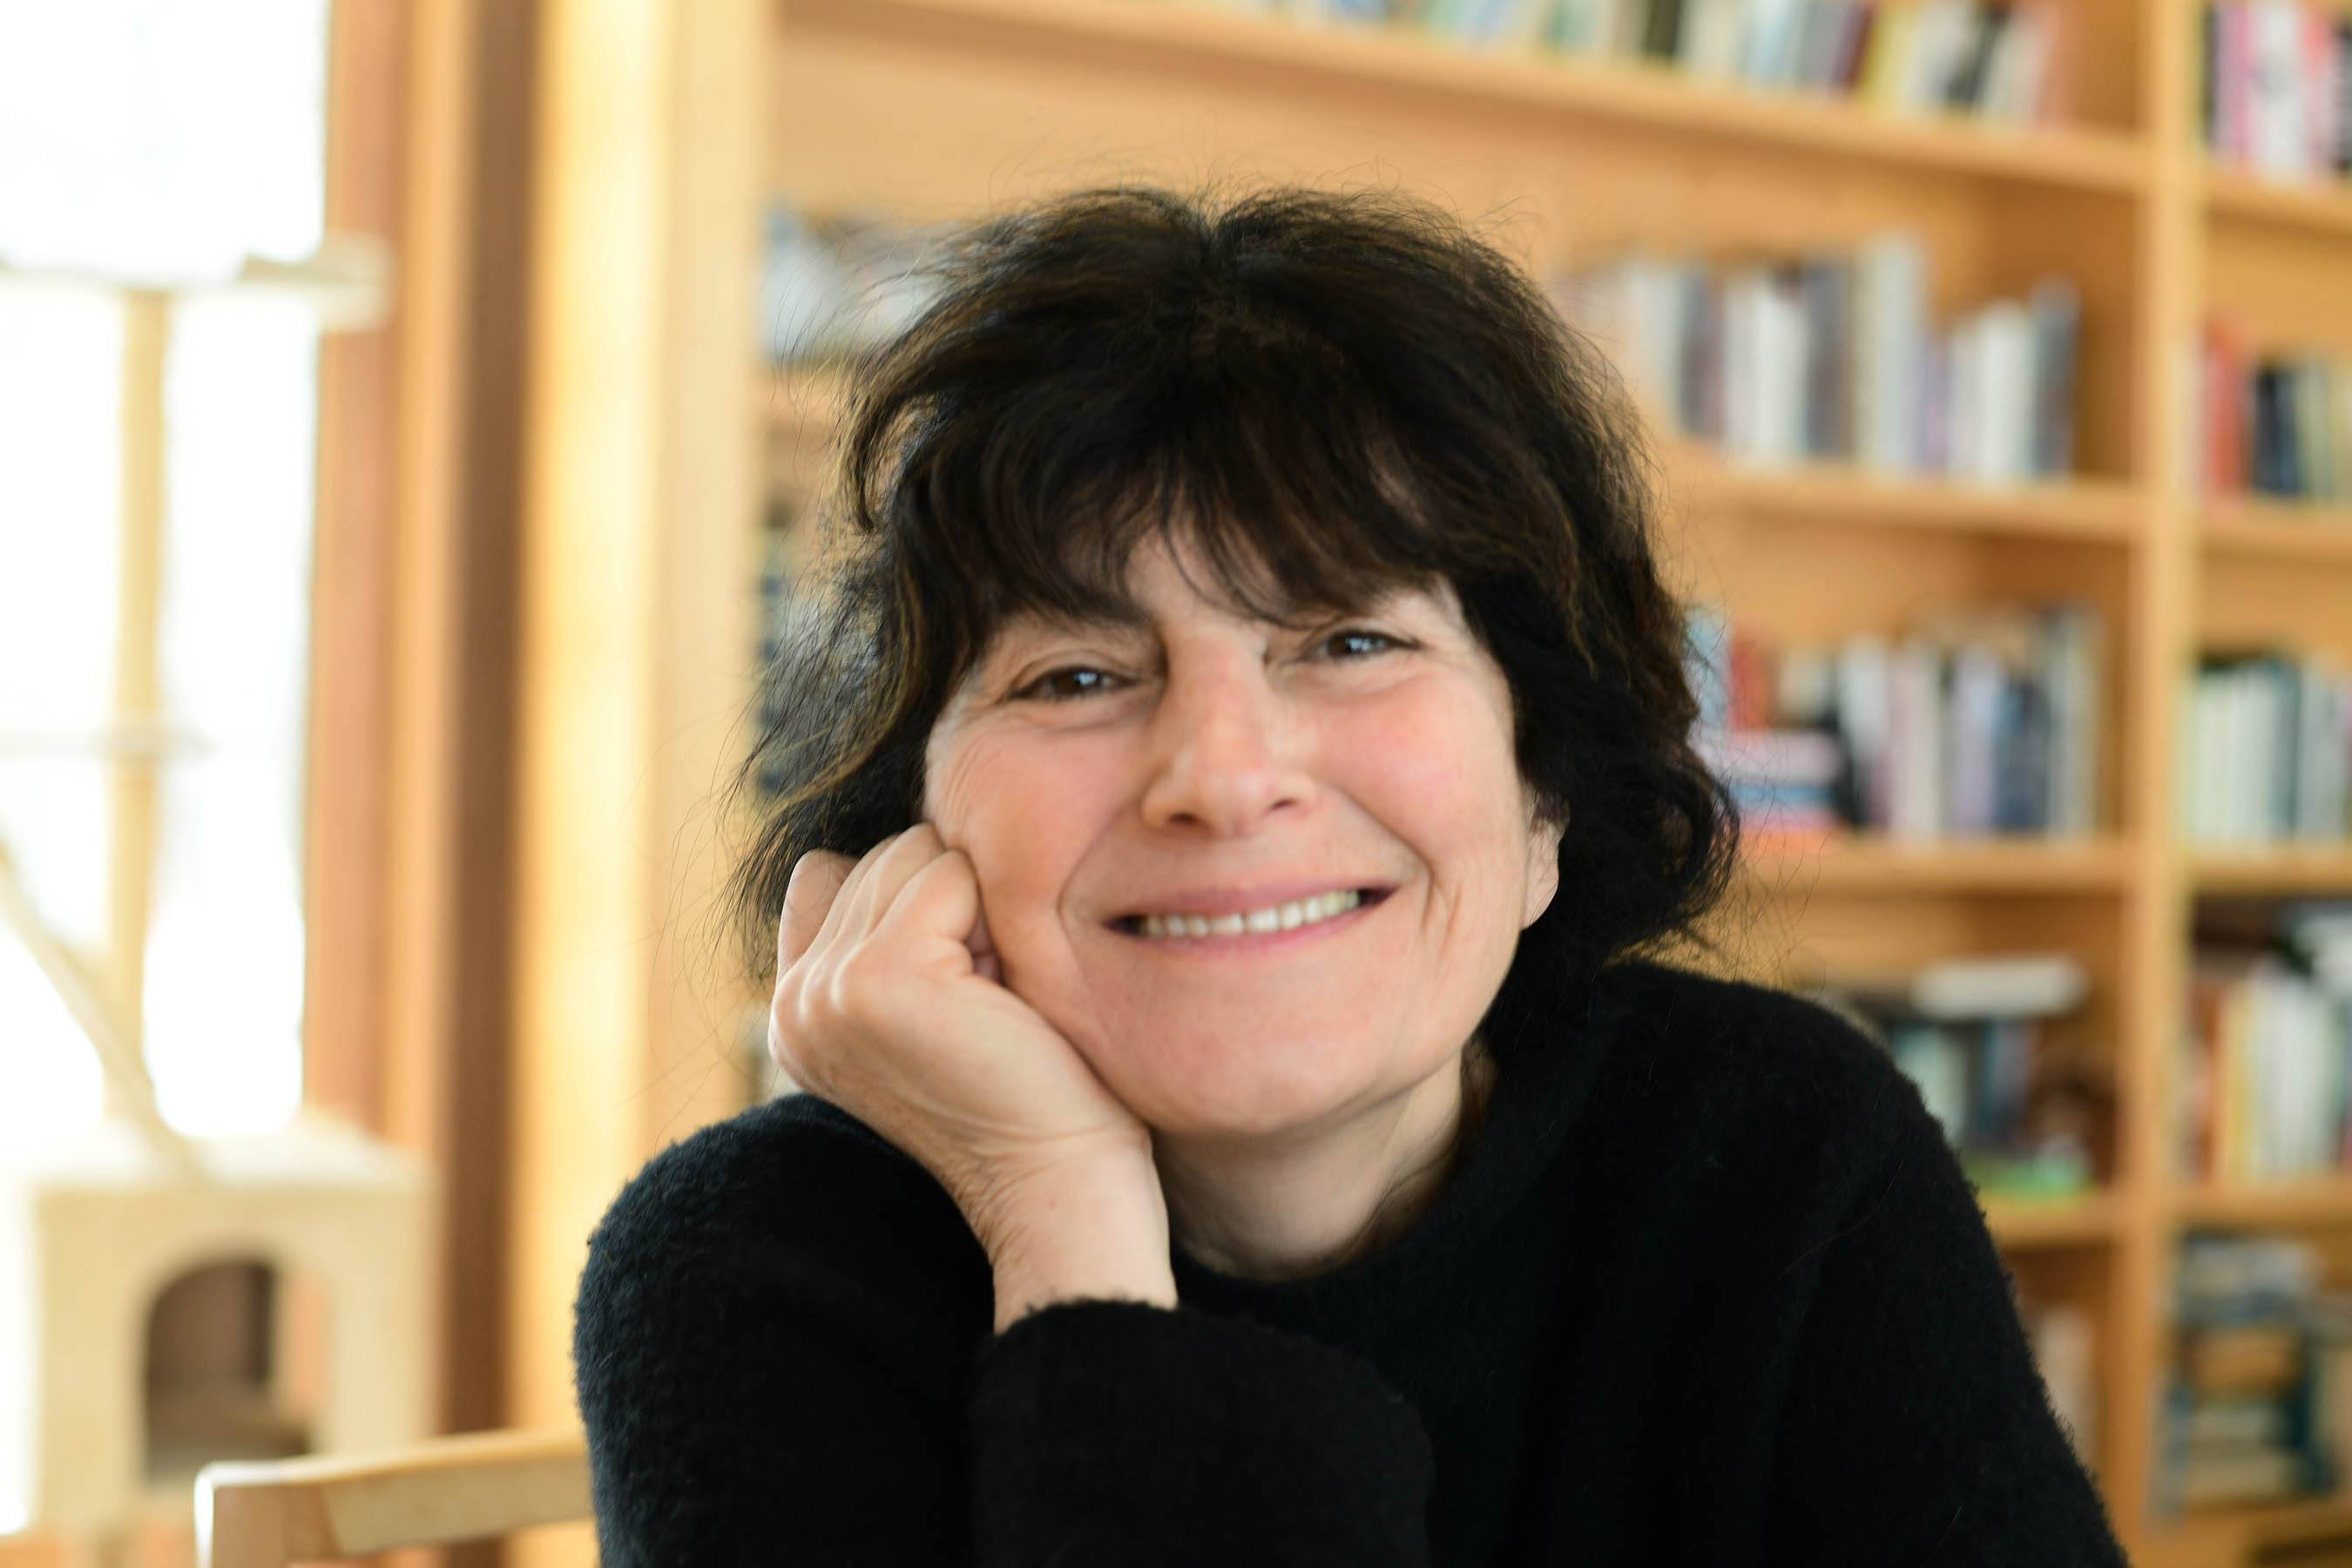 Author Ruth Reichl